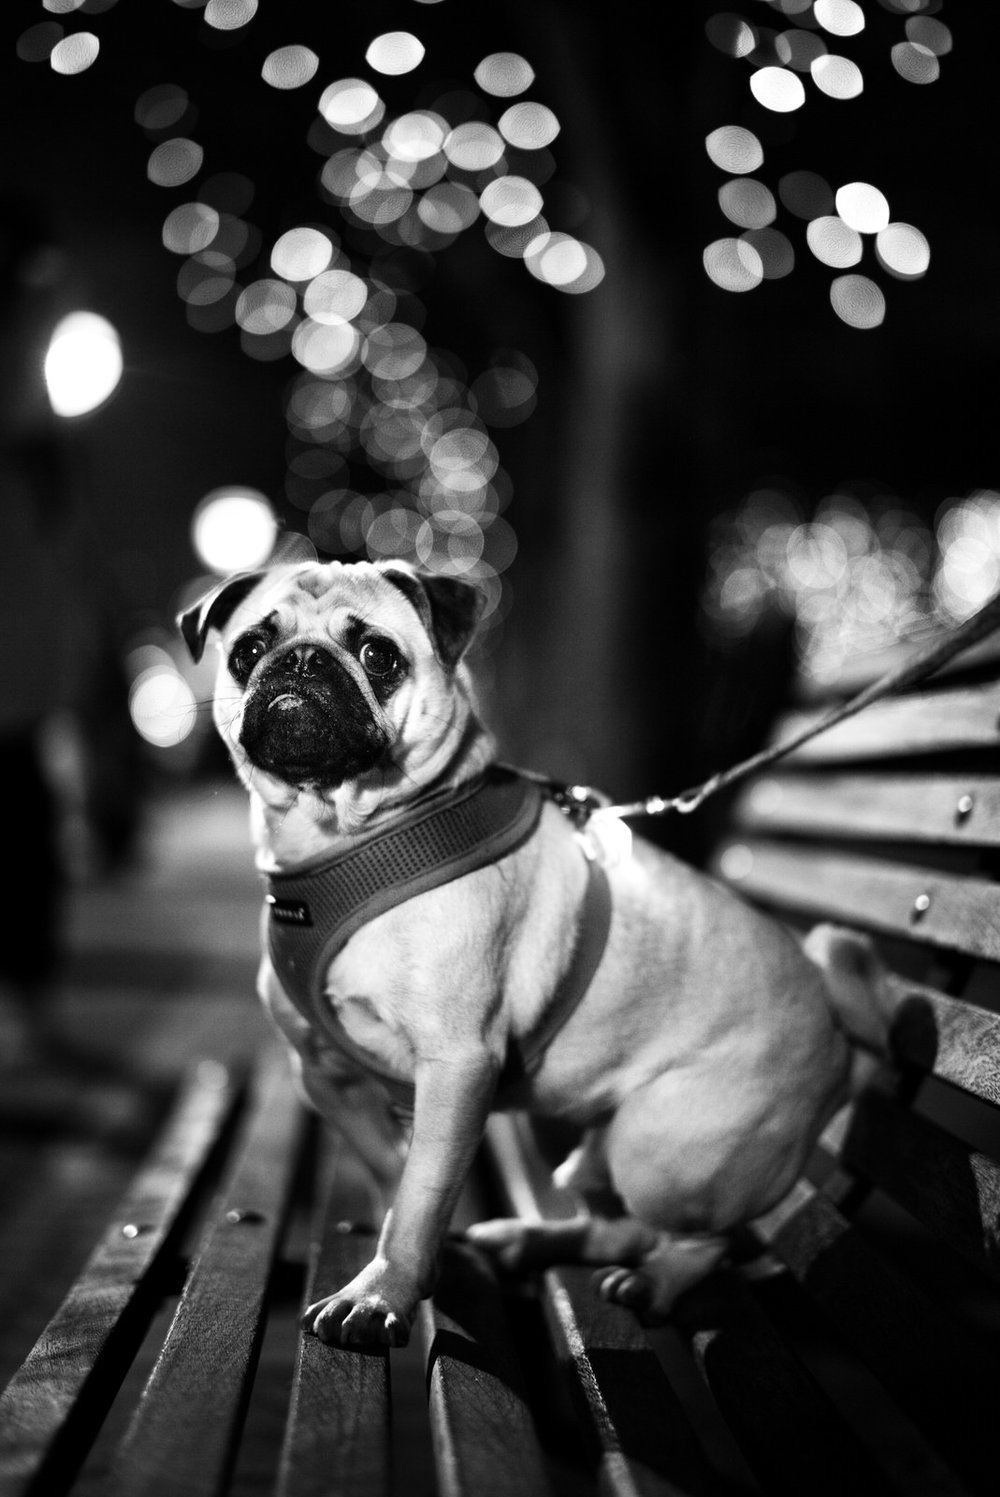 Alan Schaller - Street Photographer - Dogs 21.jpg